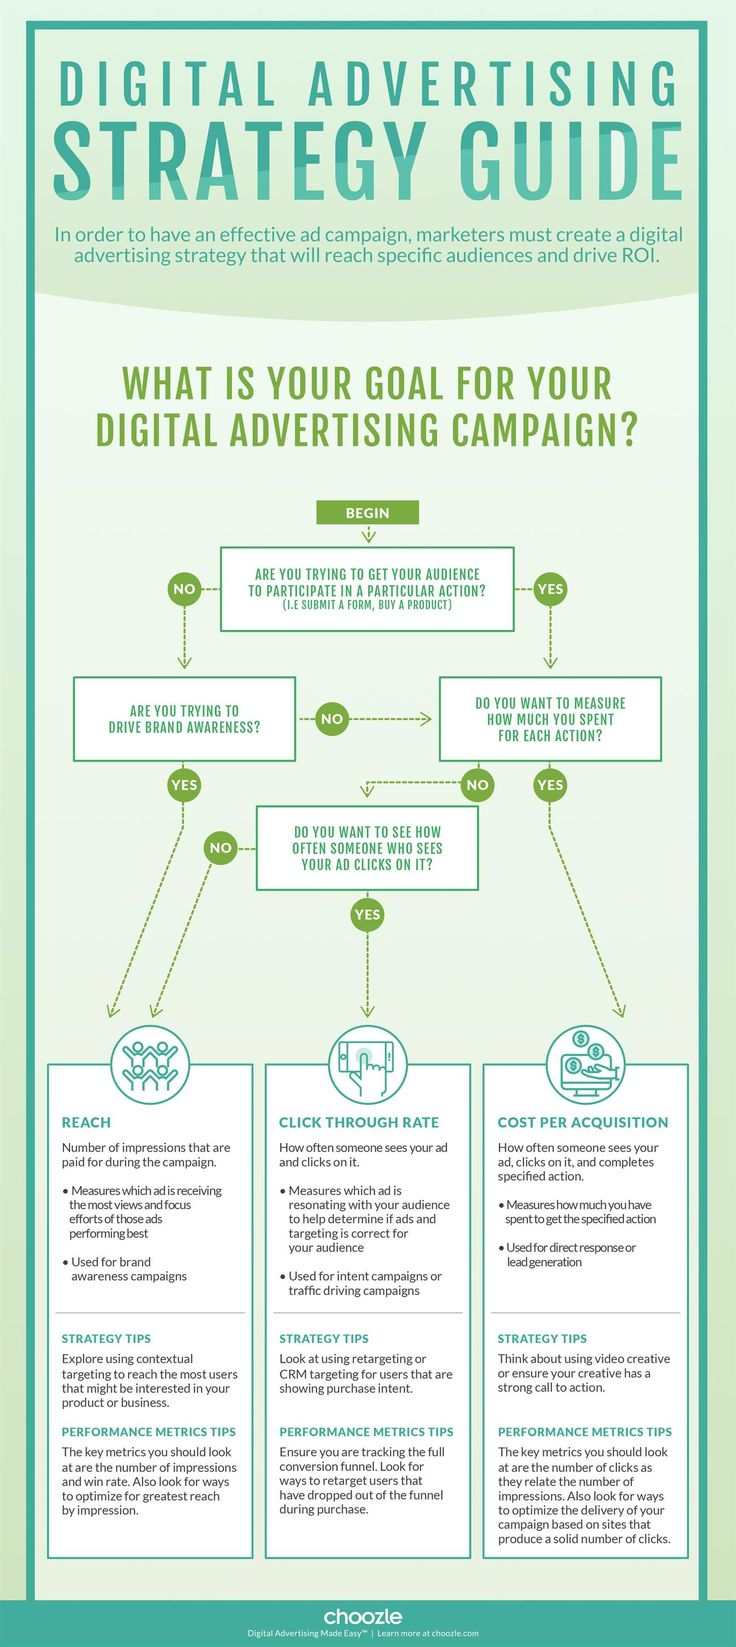 Digital marketing campaigns come down to selecting the right strategy and using the right tactics and metrics to achieve and measure campaign results. This flowchart infographic can help!